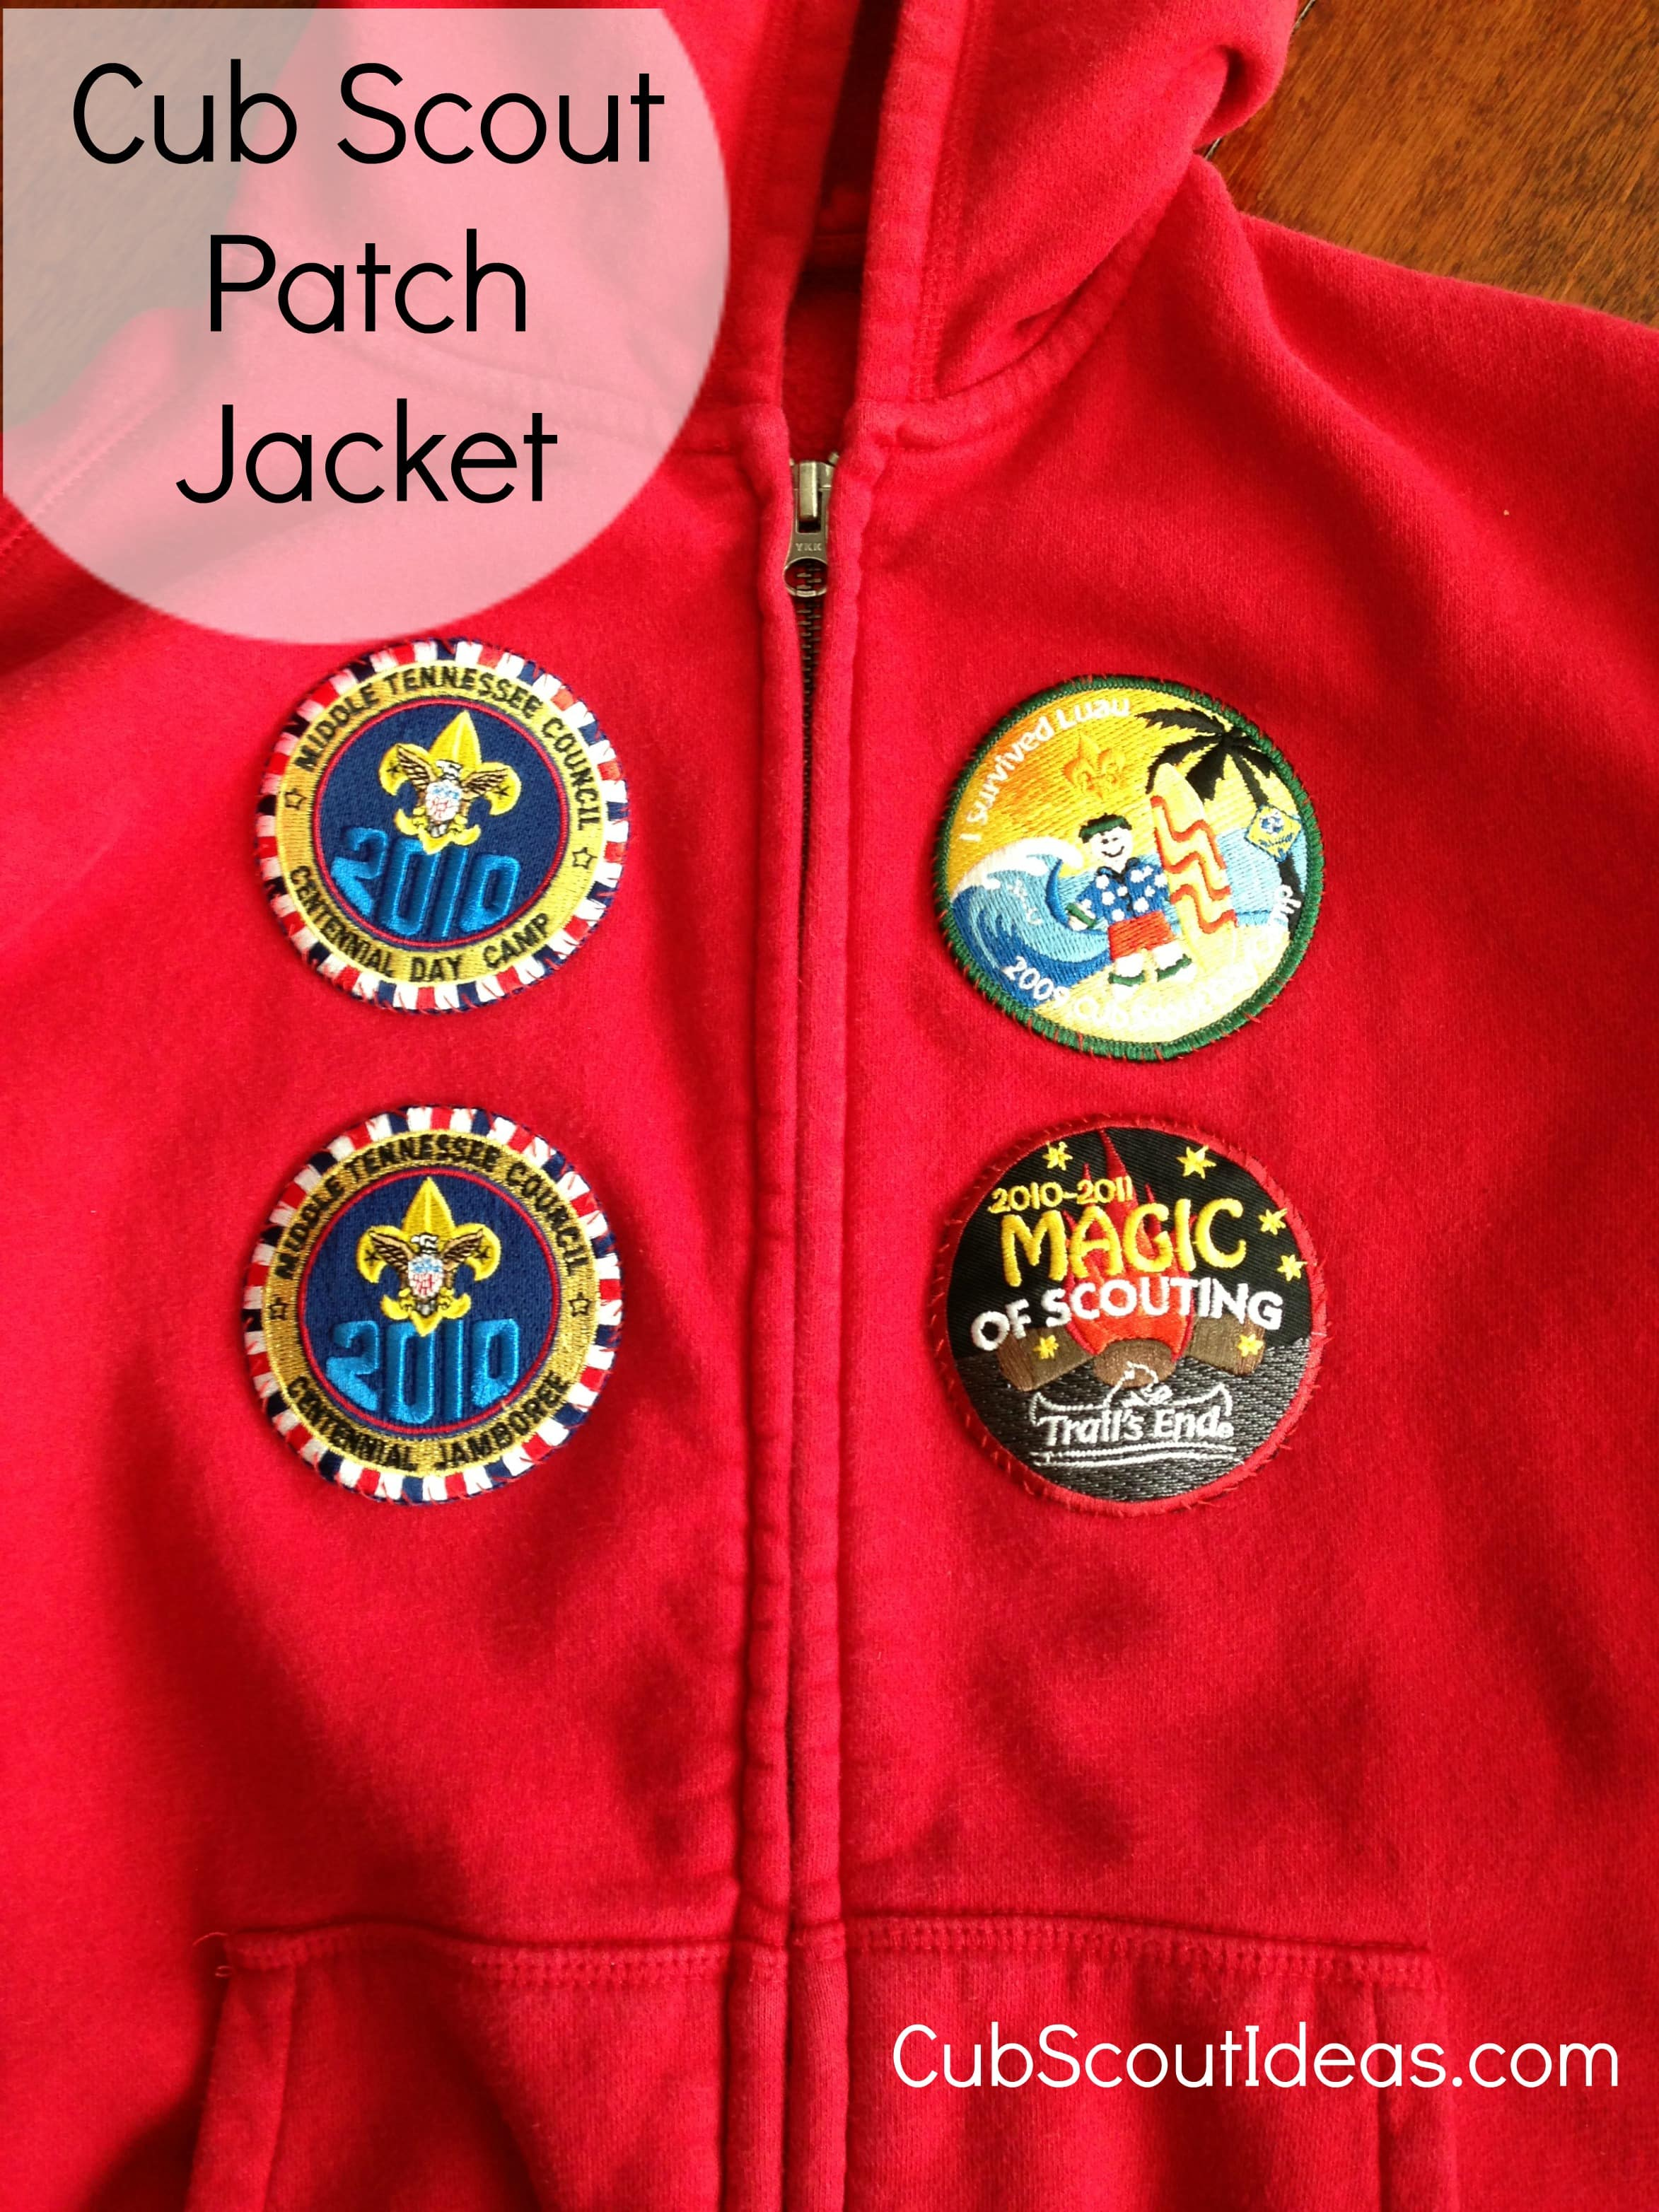 cub scout patch jacket